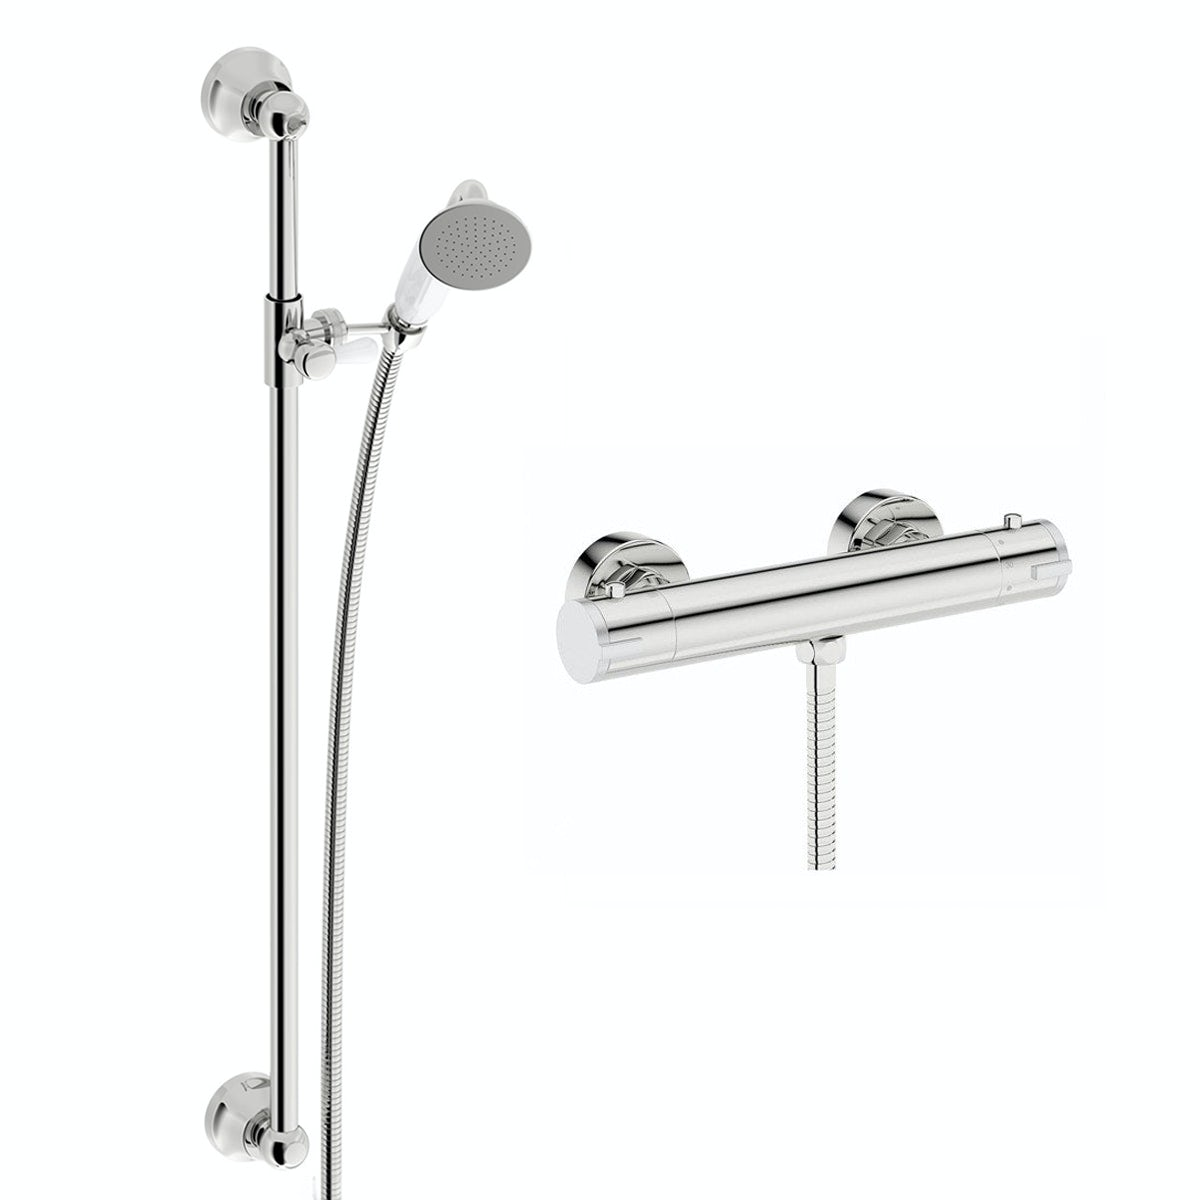 Orchard Cyclone thermostatic shower bar valve with traditional sliding shower rail kit